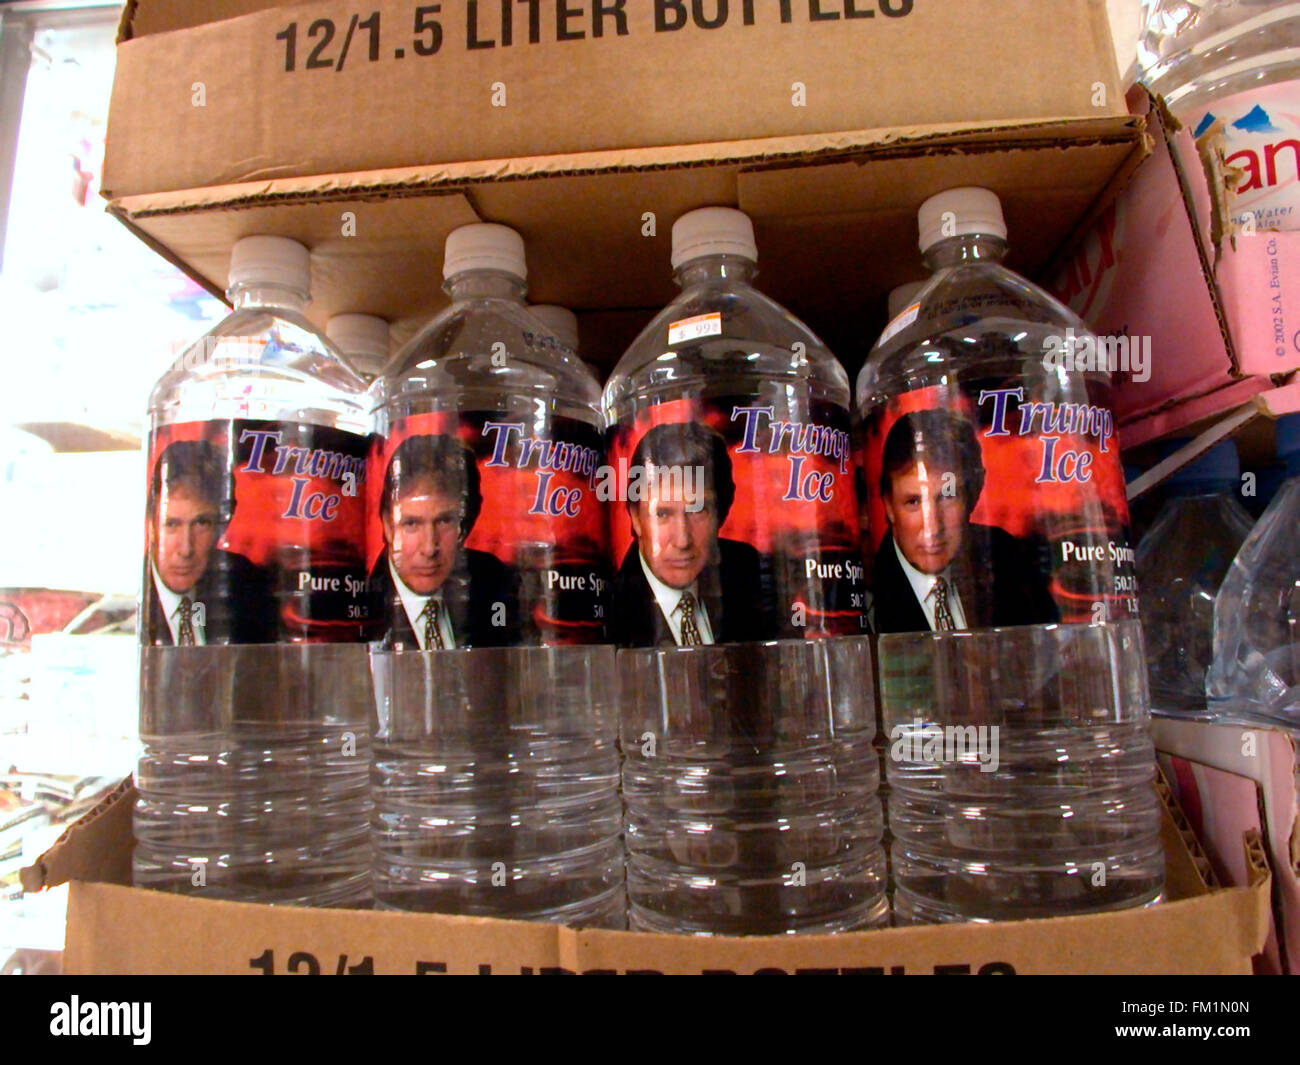 A display of 'Trump Ice' bottled water is seen in a supermarket on February 22, 2004. The bottled water - Stock Image